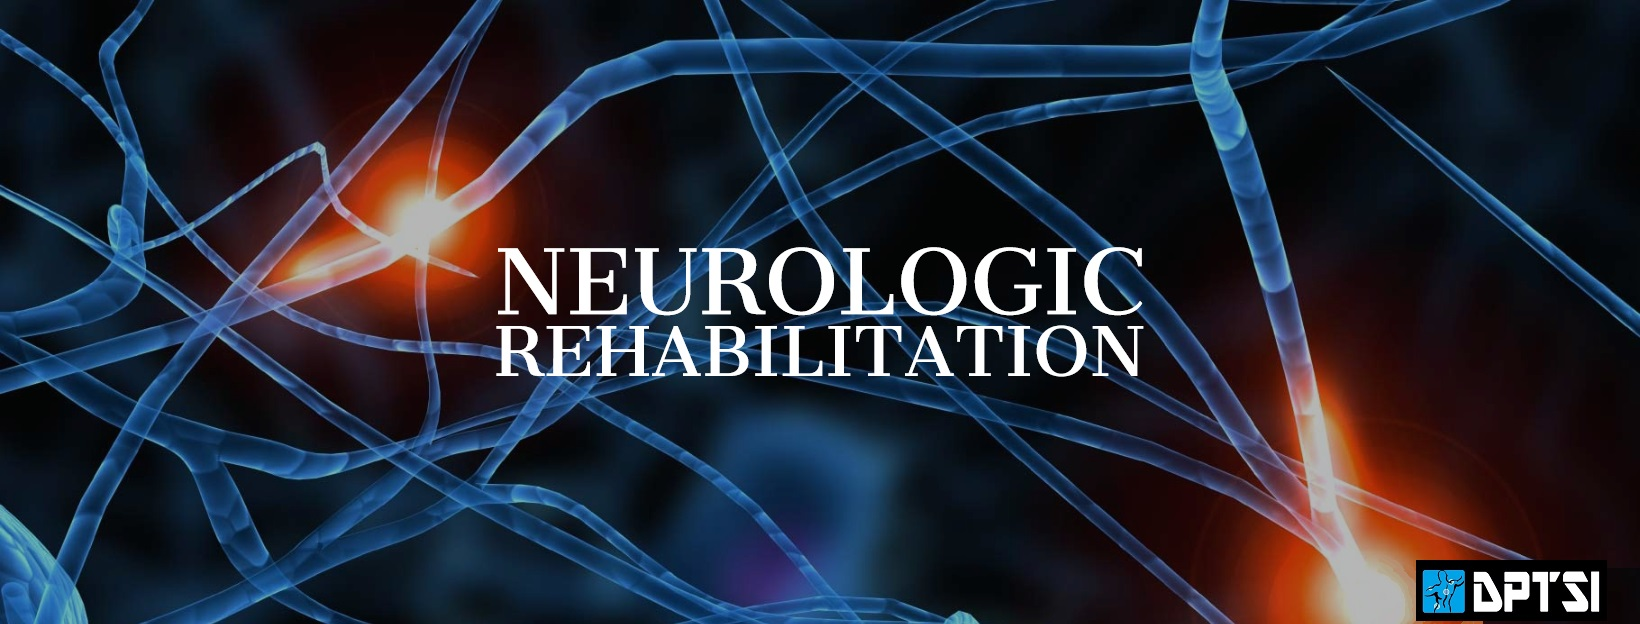 image-752147-Neuro_Rehab_Cover_Photo.jpg